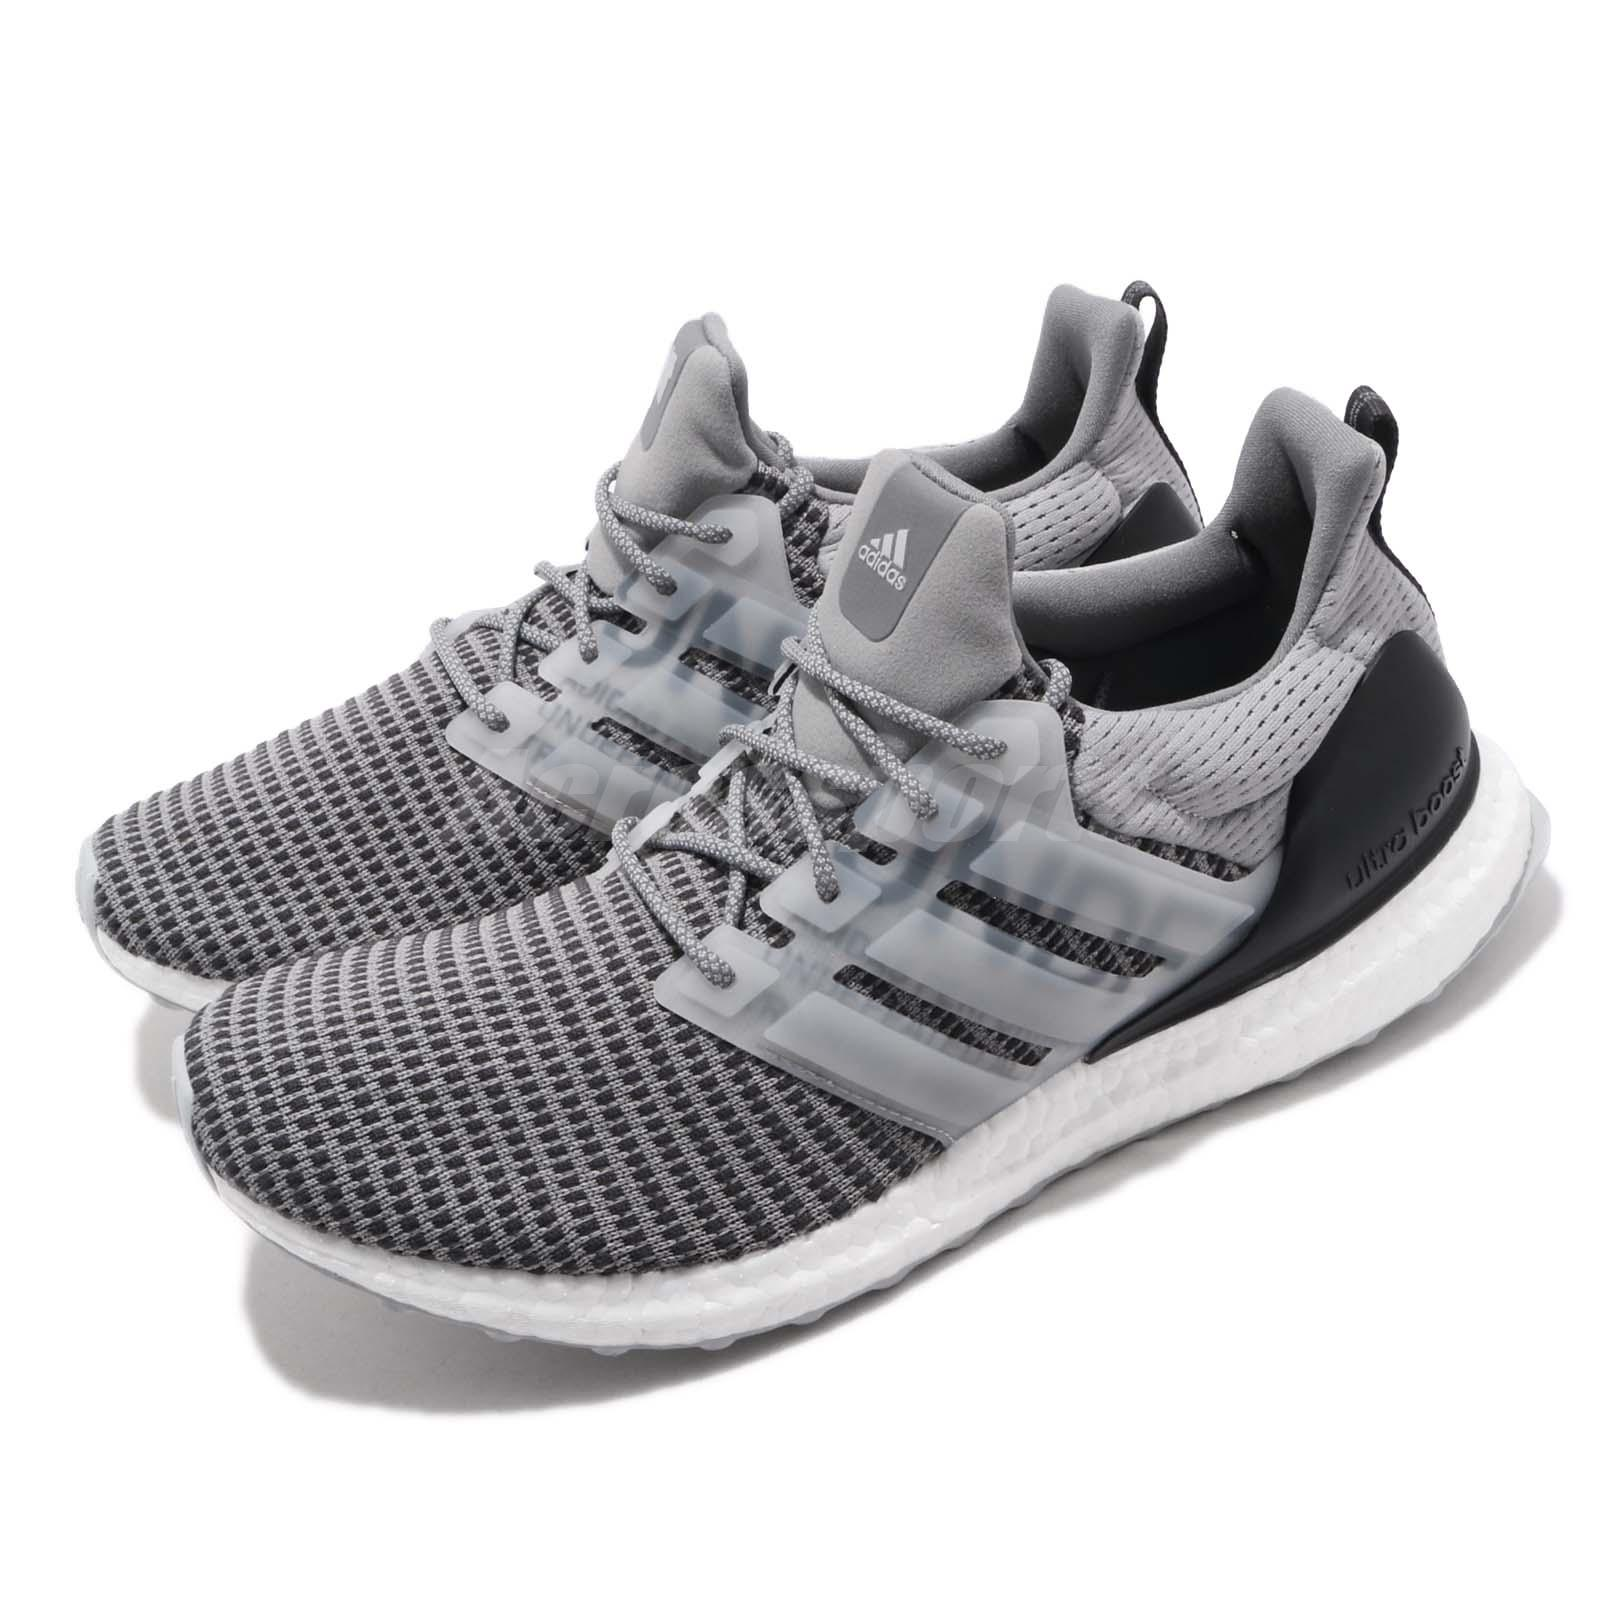 brand new fcfa6 5a4ac Details about Undefeated X adidas Ultraboost Undftd Shift Grey BOOST Mens  Running Shoes CG7148